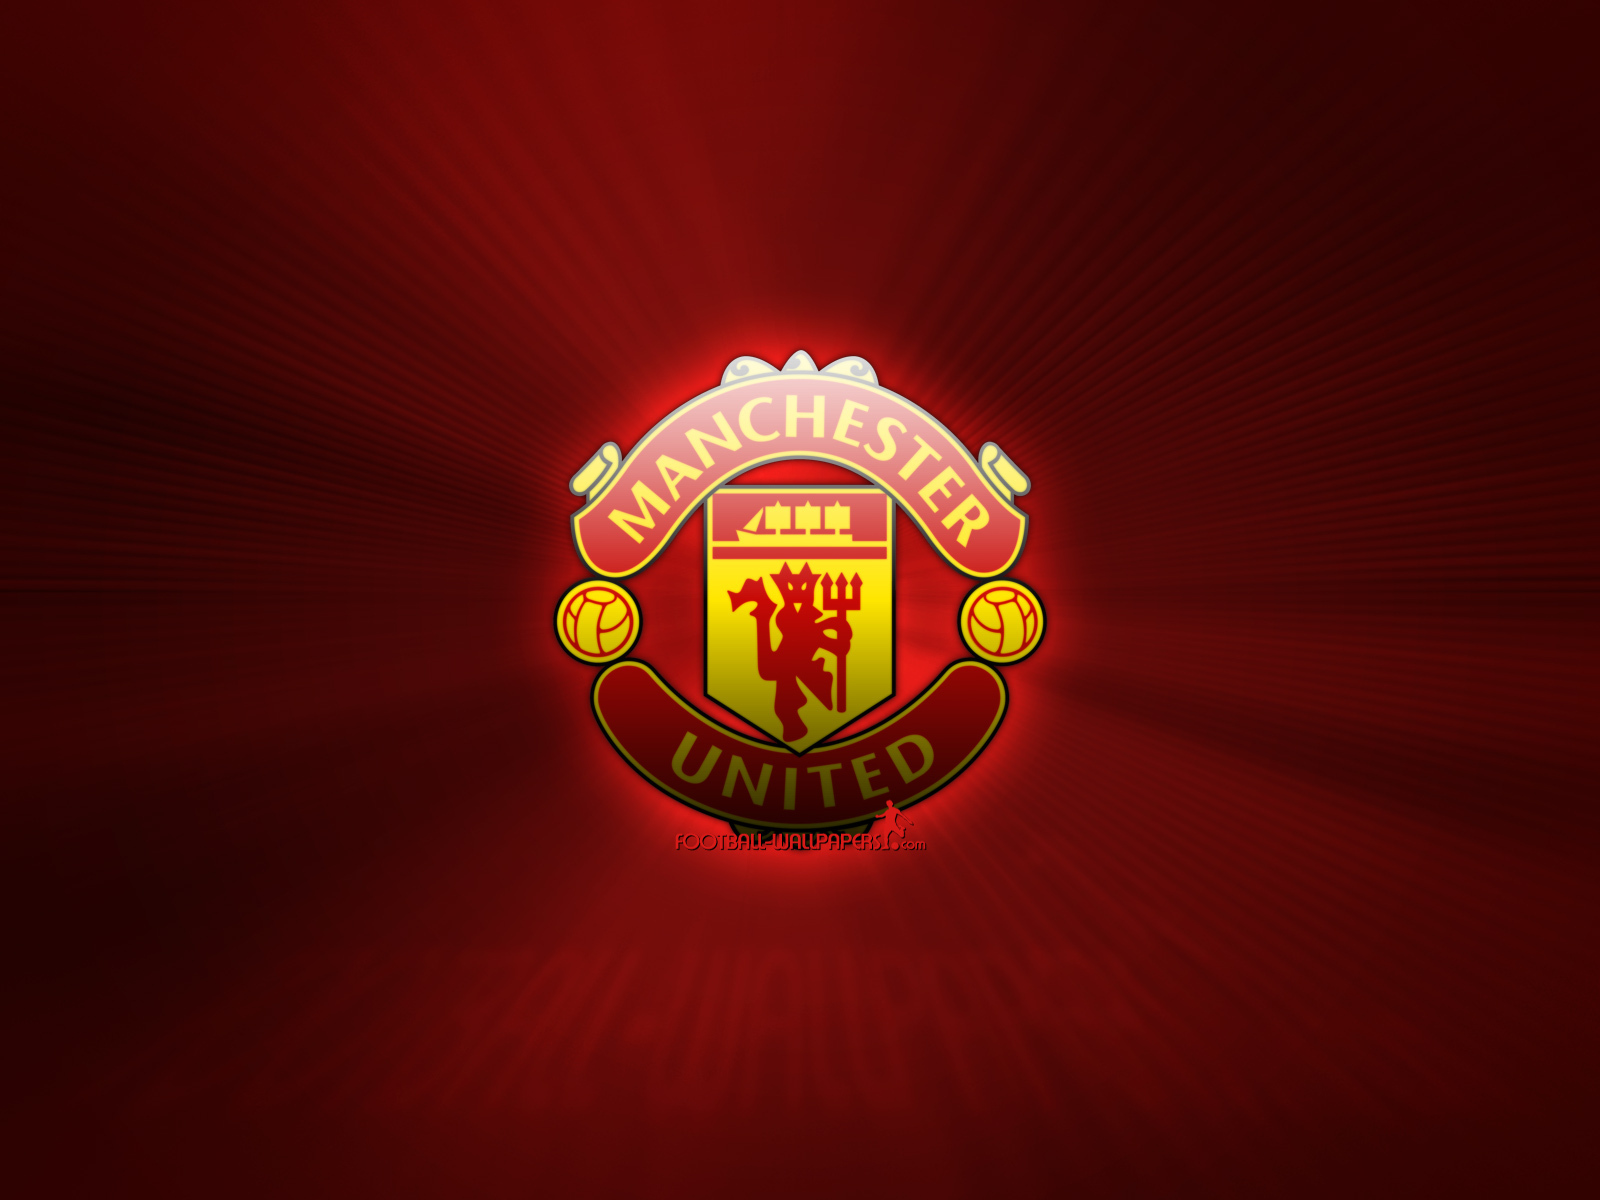 10 Manchester United Wallpaper Quotes Wallpapers 1600x1200